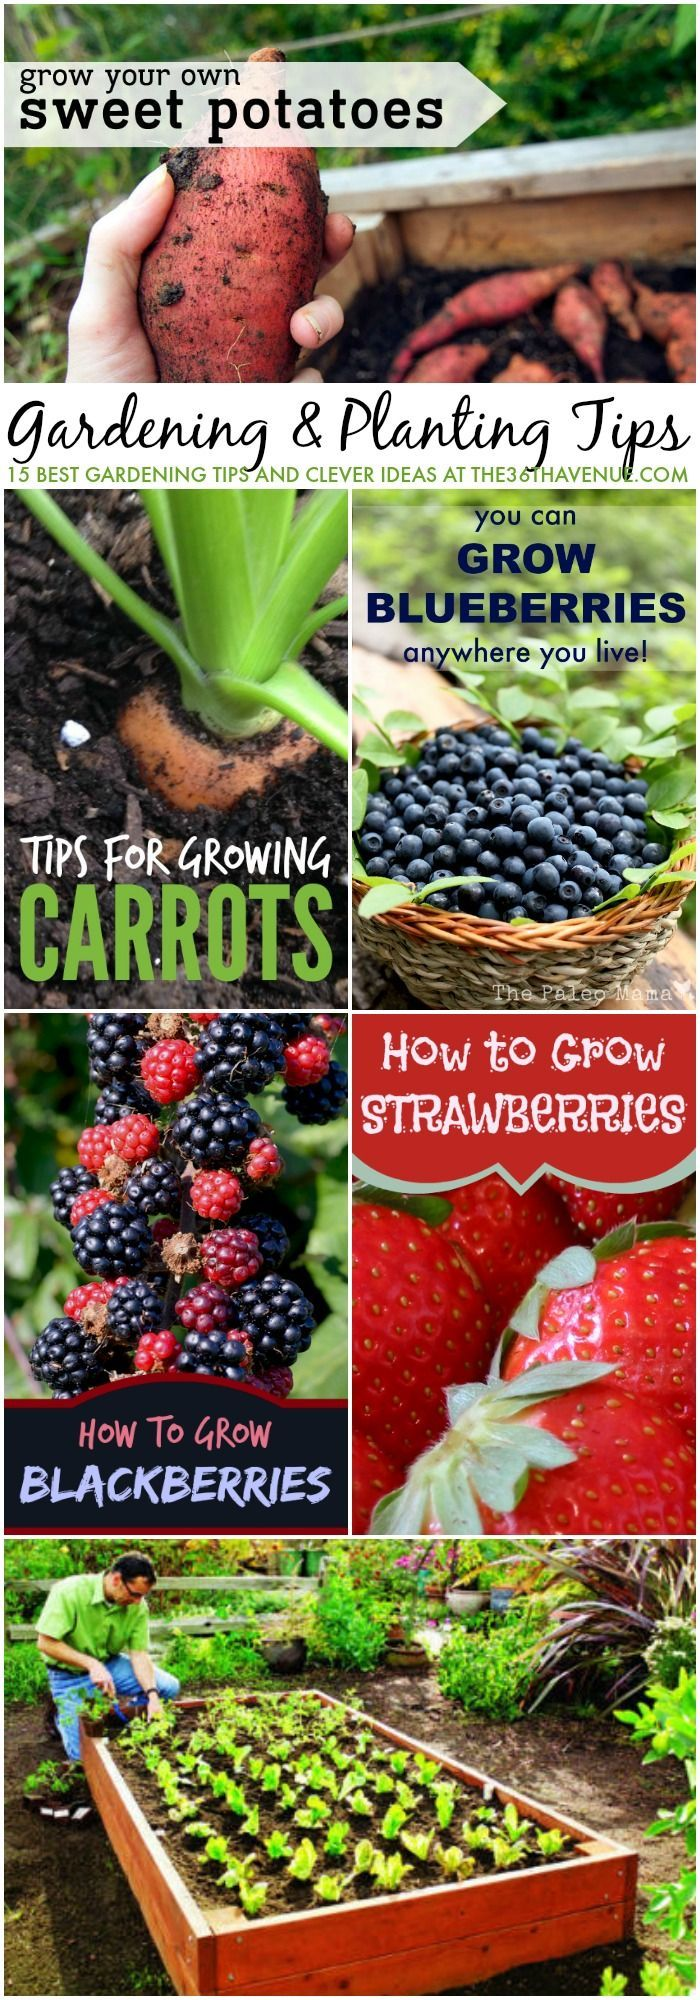 Wow! I am so excited about these great gardening tips and clever ideas. I can't wait to get my garden started, fantastic tips!